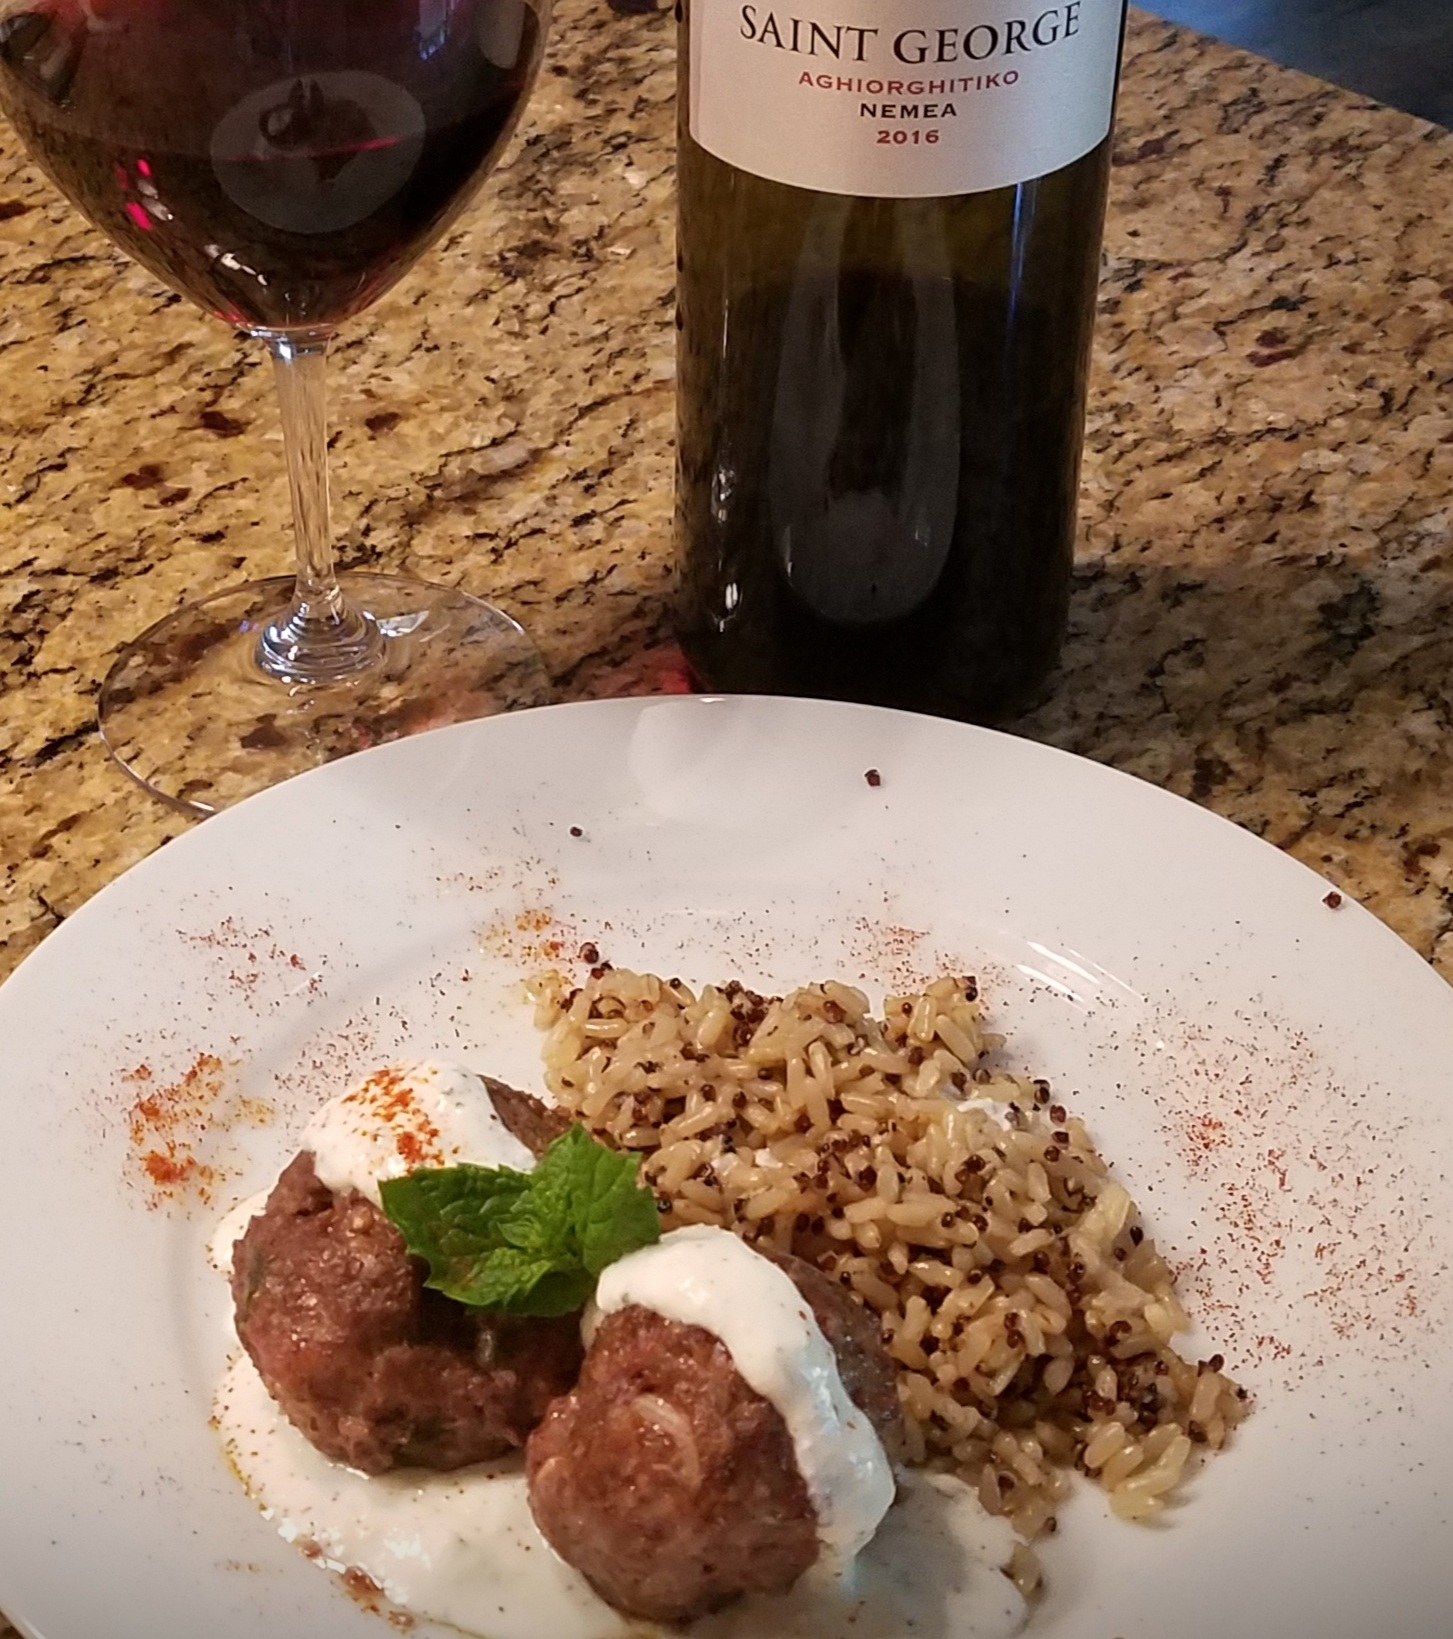 Greek Style Meat Balls with Quinoa and Brown Rice paired with Skouras Aghiorghitiko wine from Greece